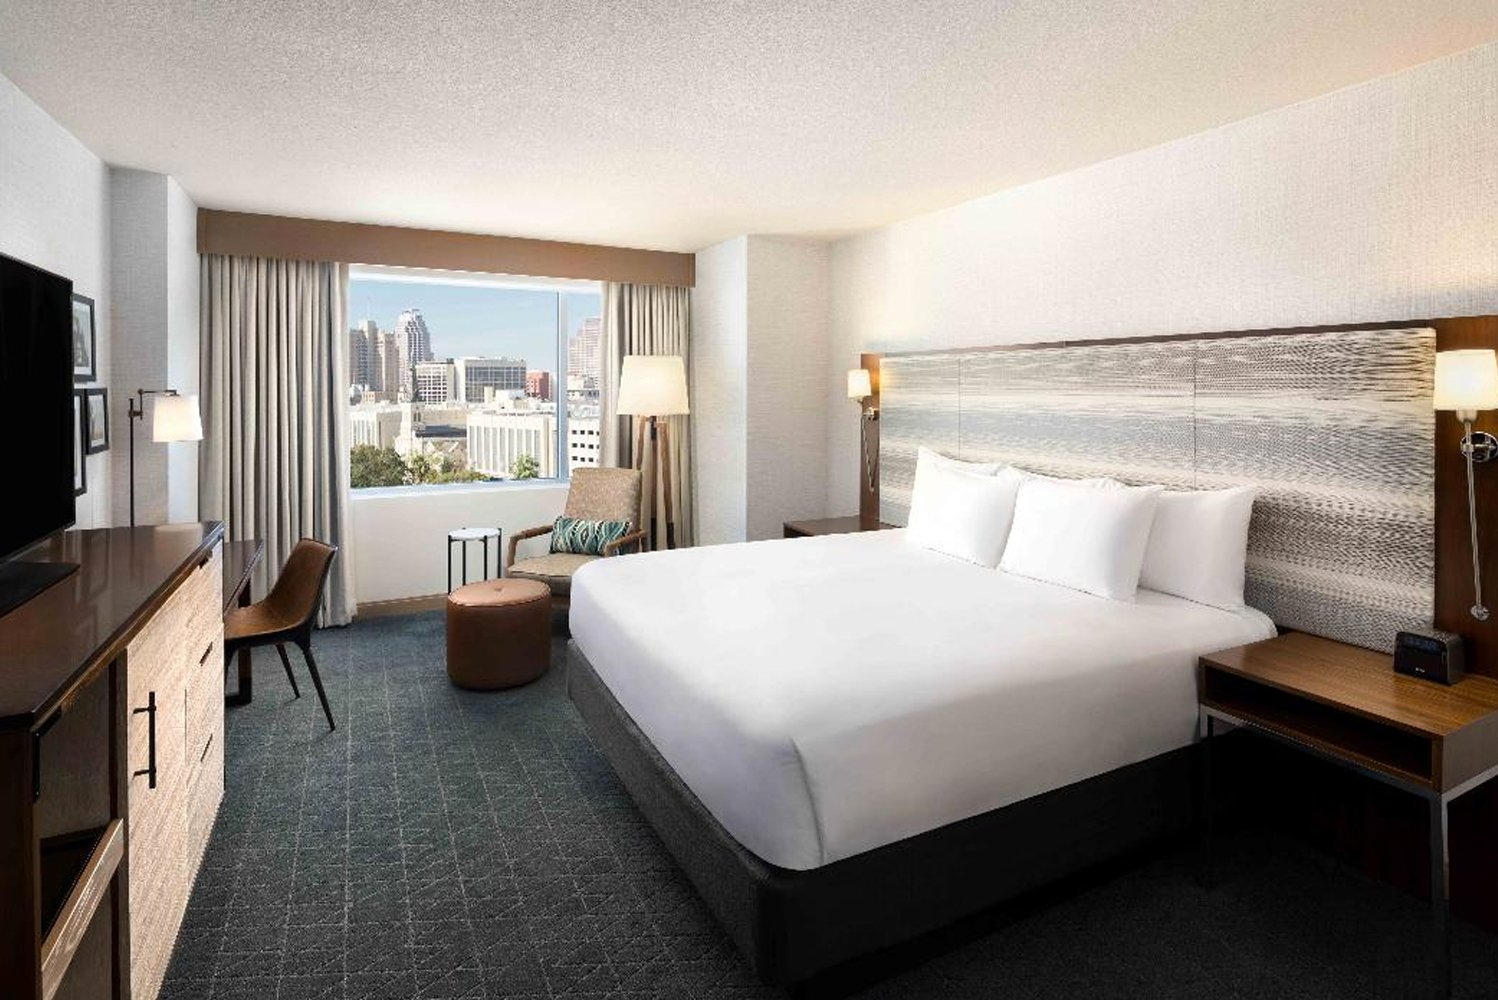 The rooms now have new Hyatt Grand beds, 55-inch flat-screen televisions, indigo carpeting, ivory wall coverings, and wooden tones of teak and birch.